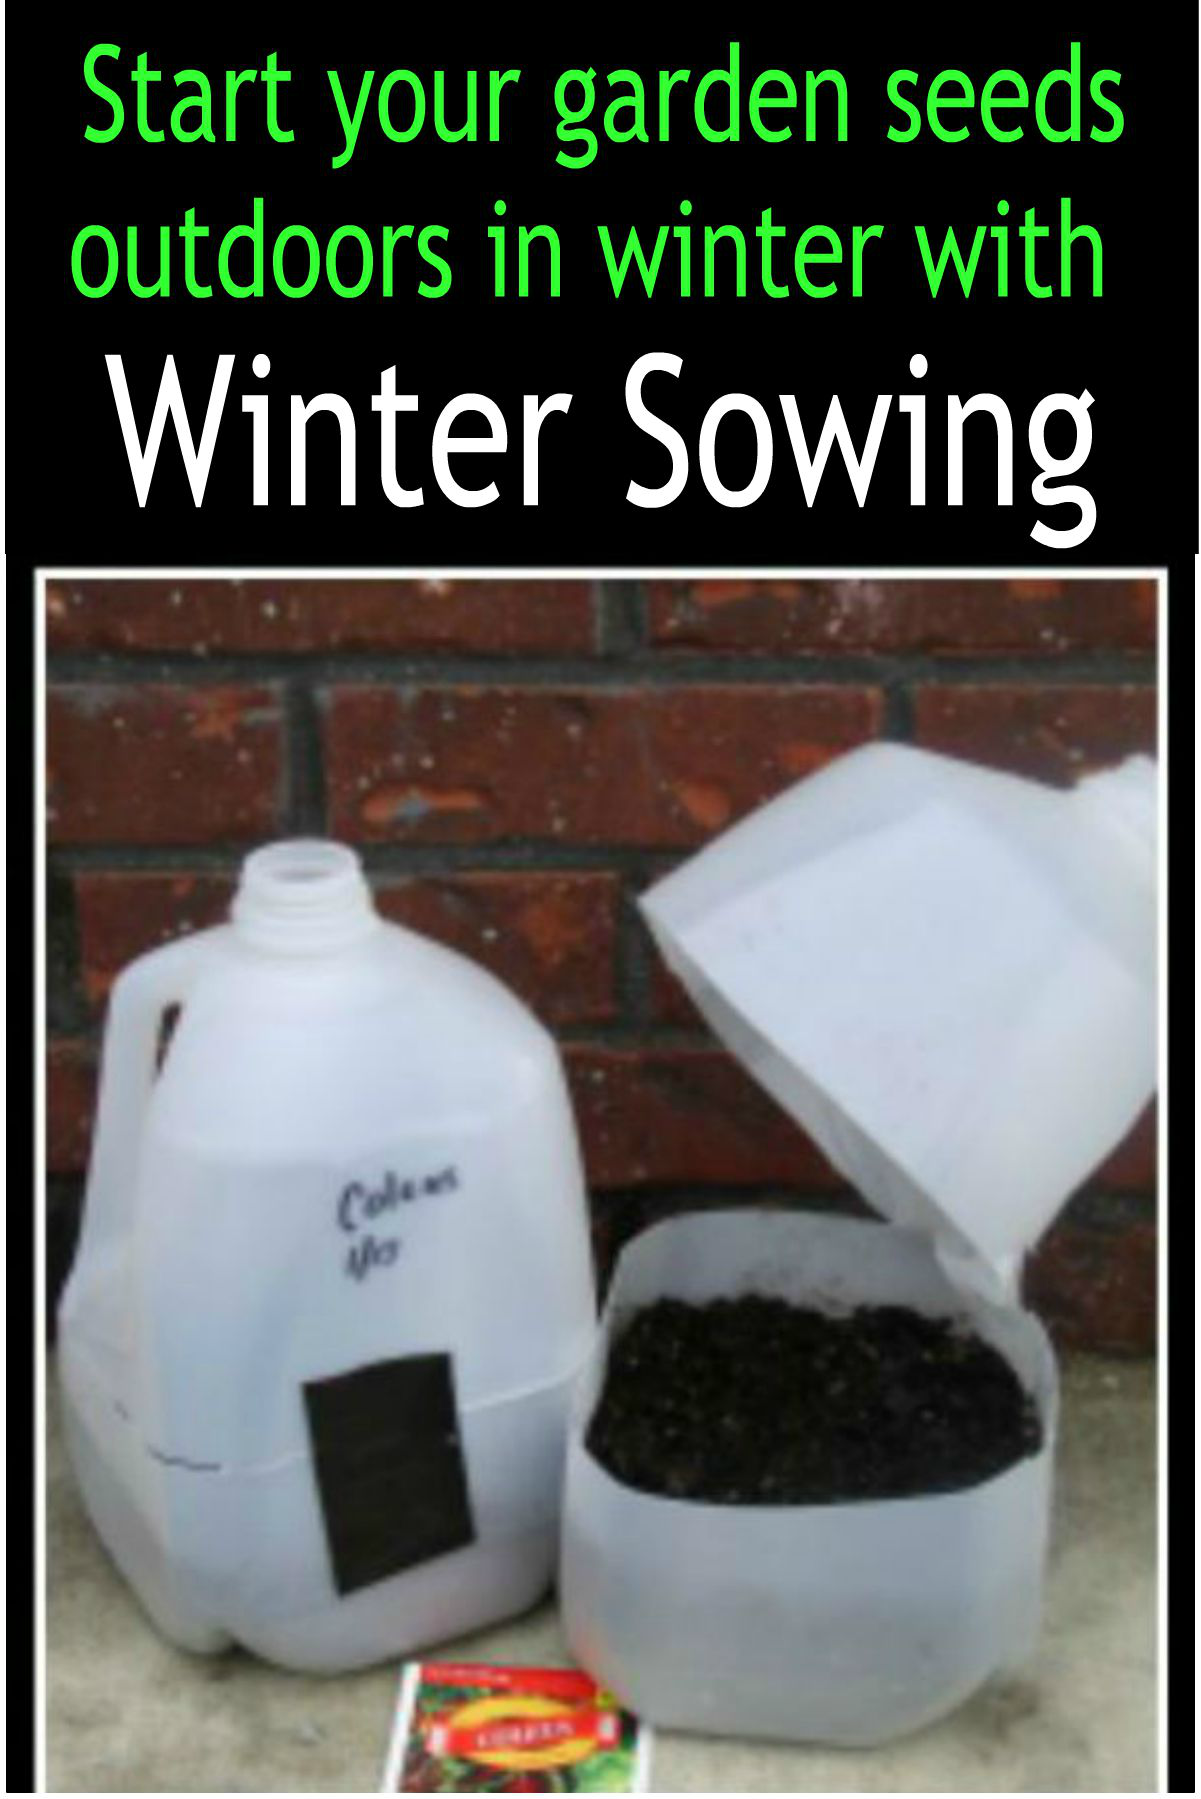 Start your garden seeds in milk jugs outdoors in wintertime - haphazardhomemaker.com